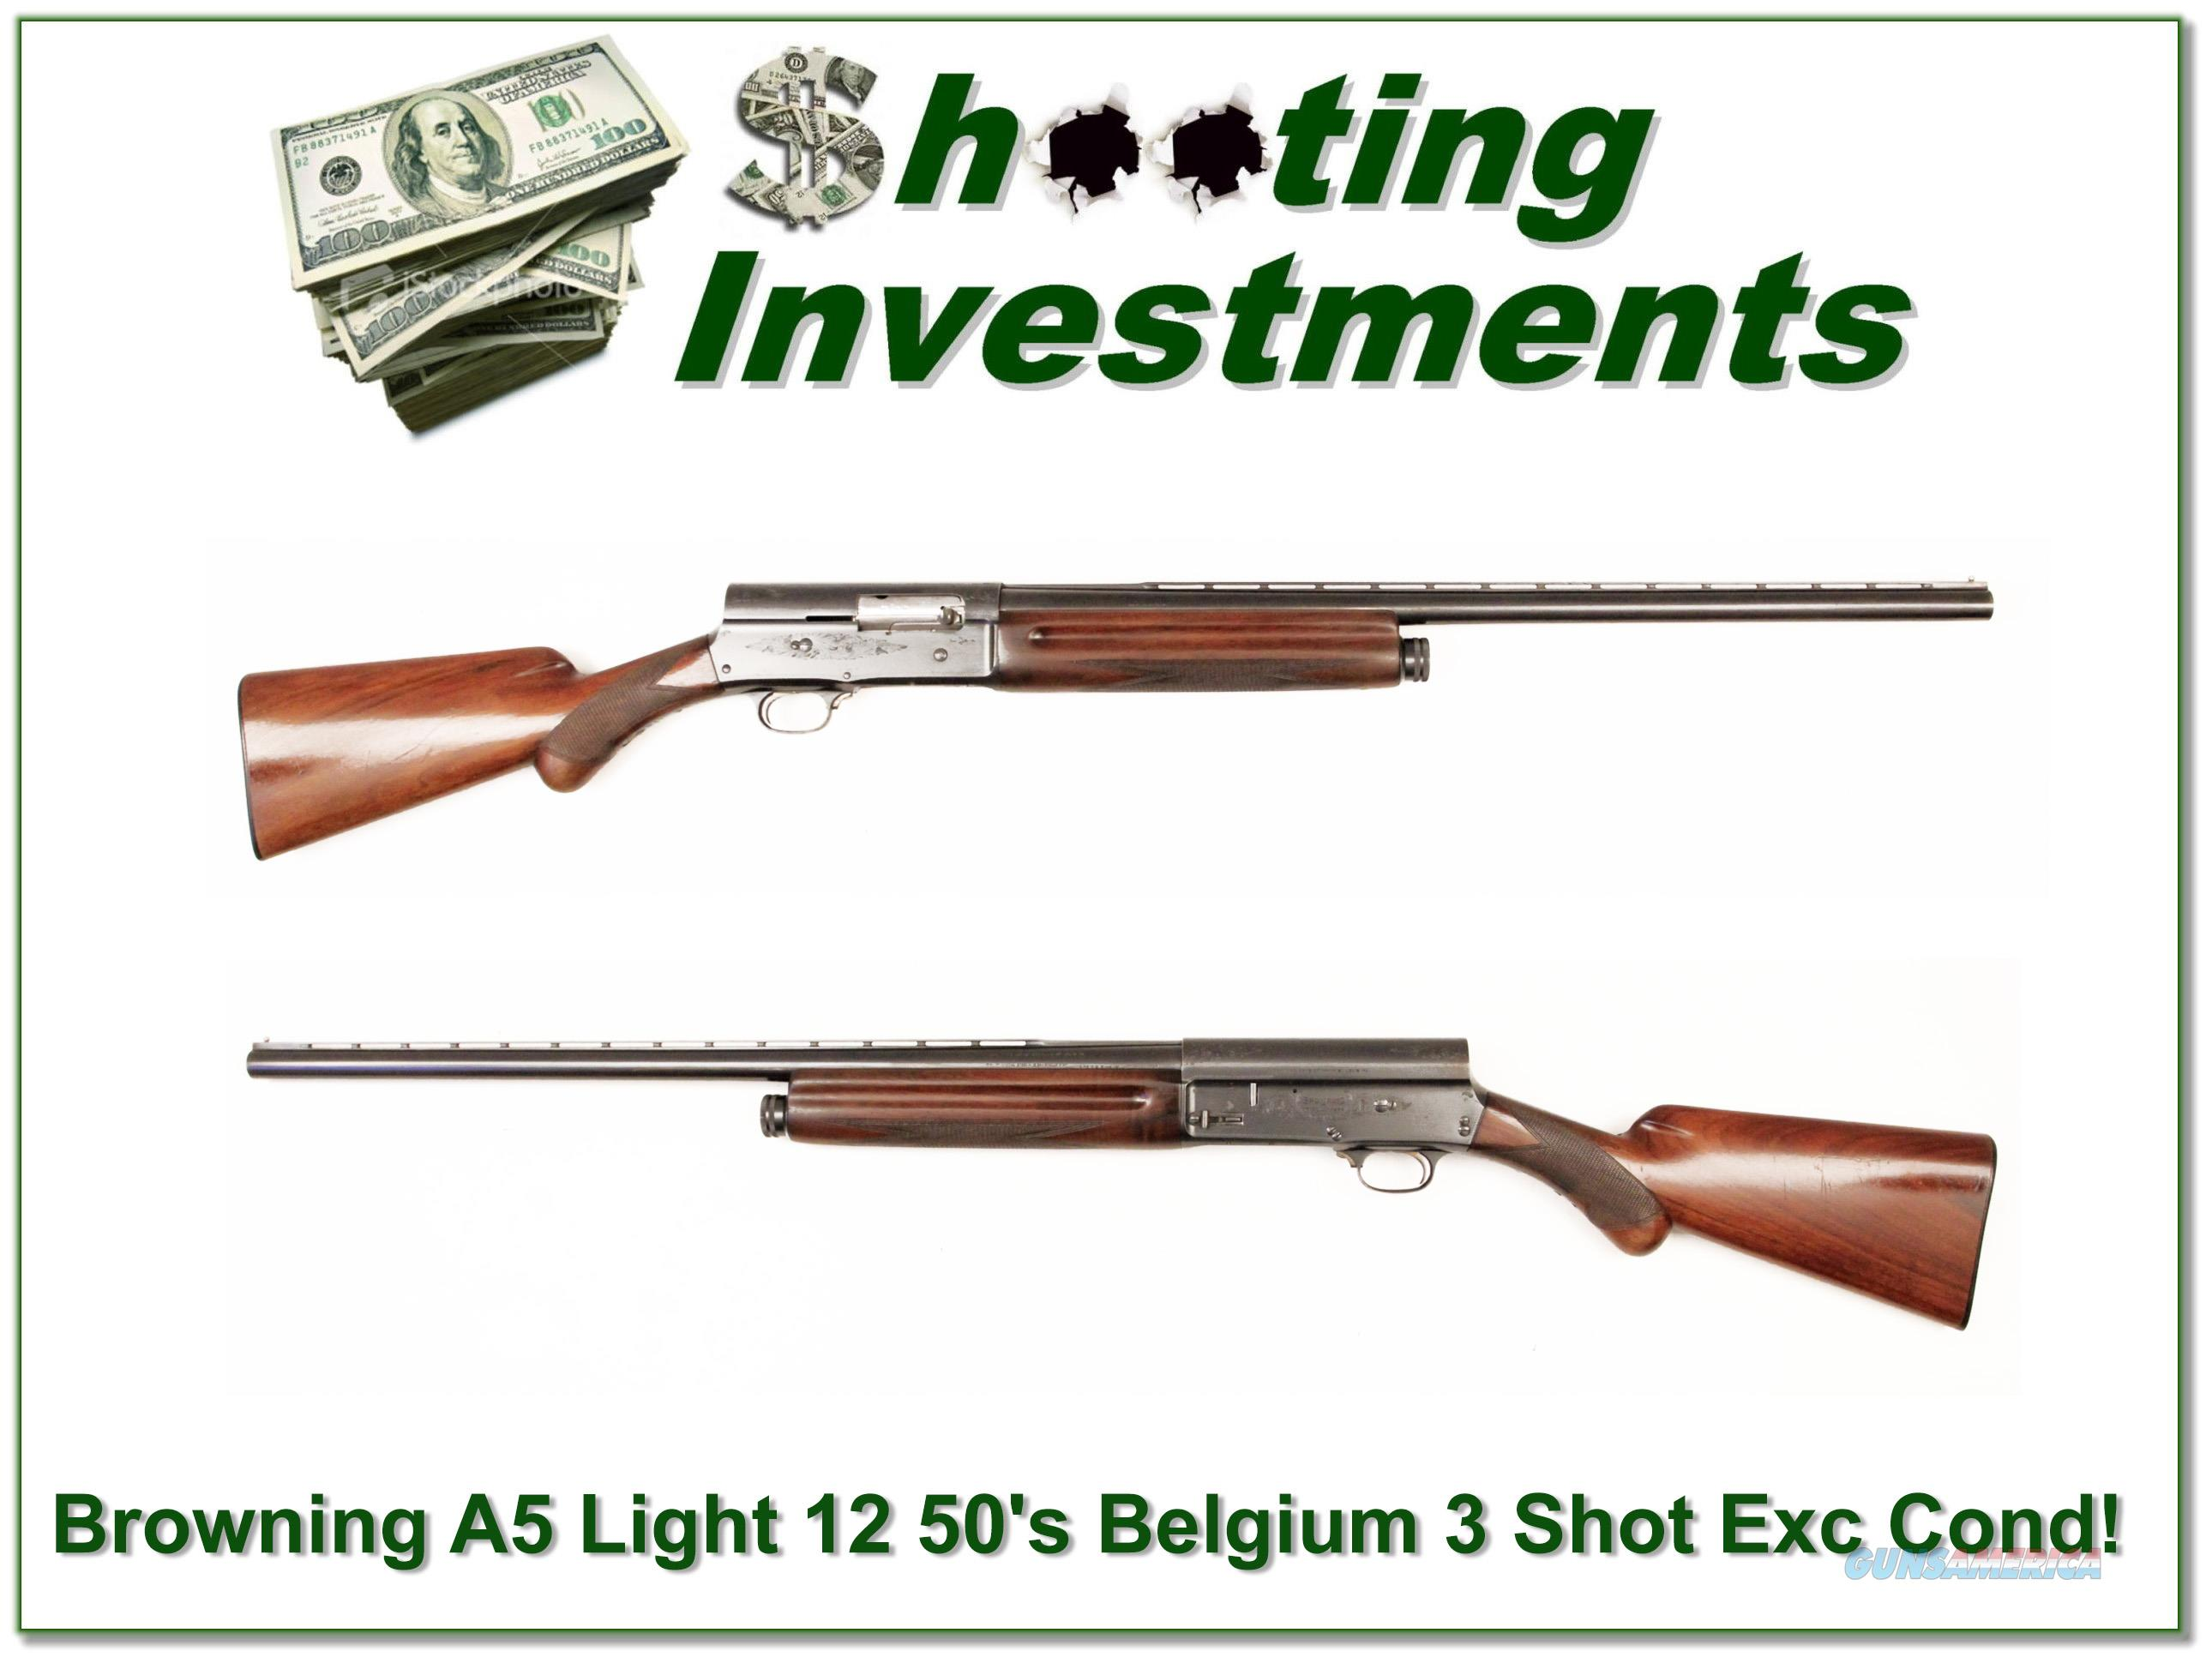 Browning A5 Light 12 47 Belgium 26in IC VR!  Guns > Shotguns > Browning Shotguns > Autoloaders > Hunting